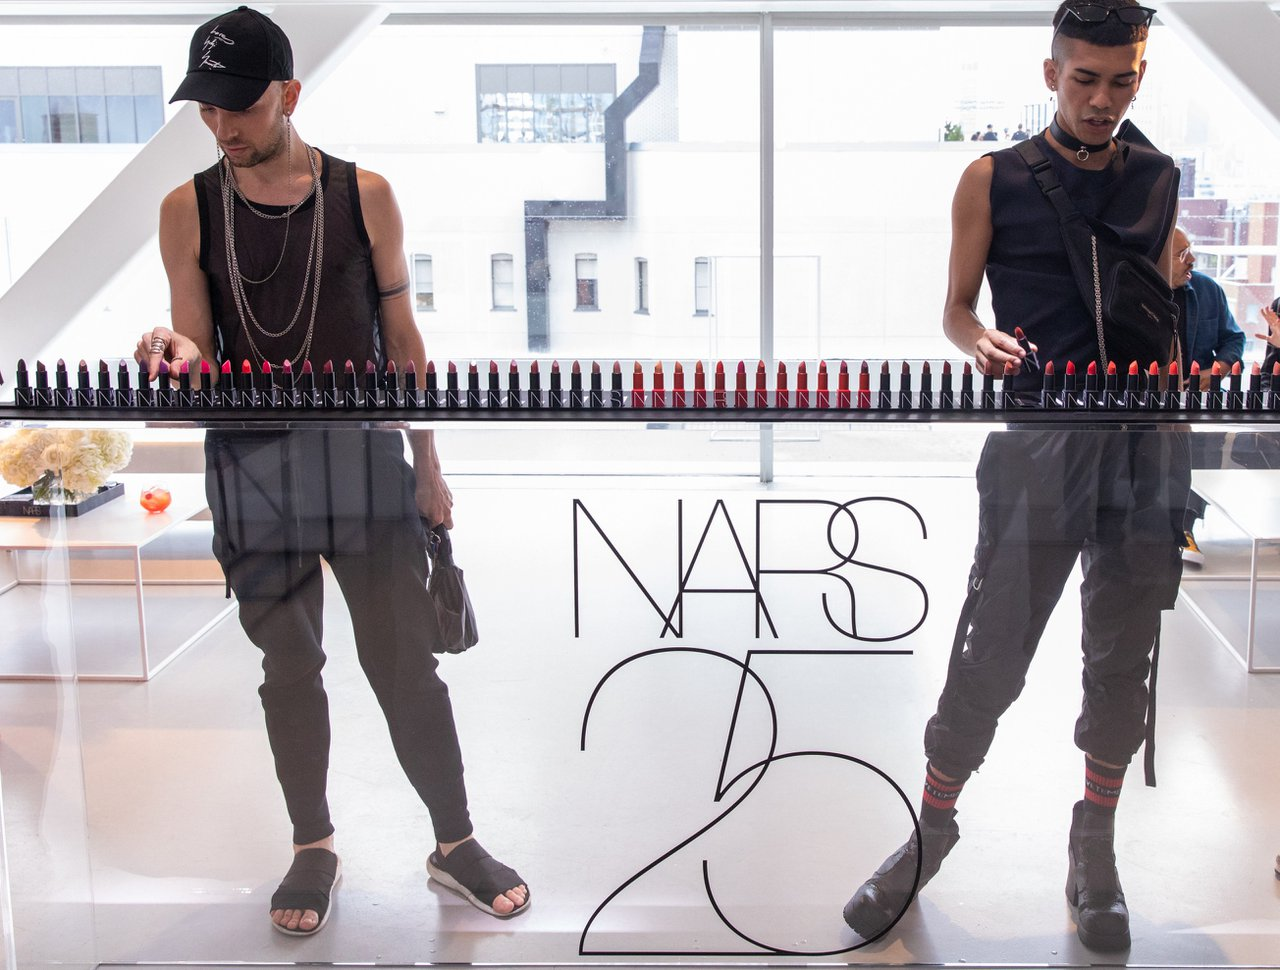 NARS 25th Anniversary  photo Copy of 1S9A6814.jpg